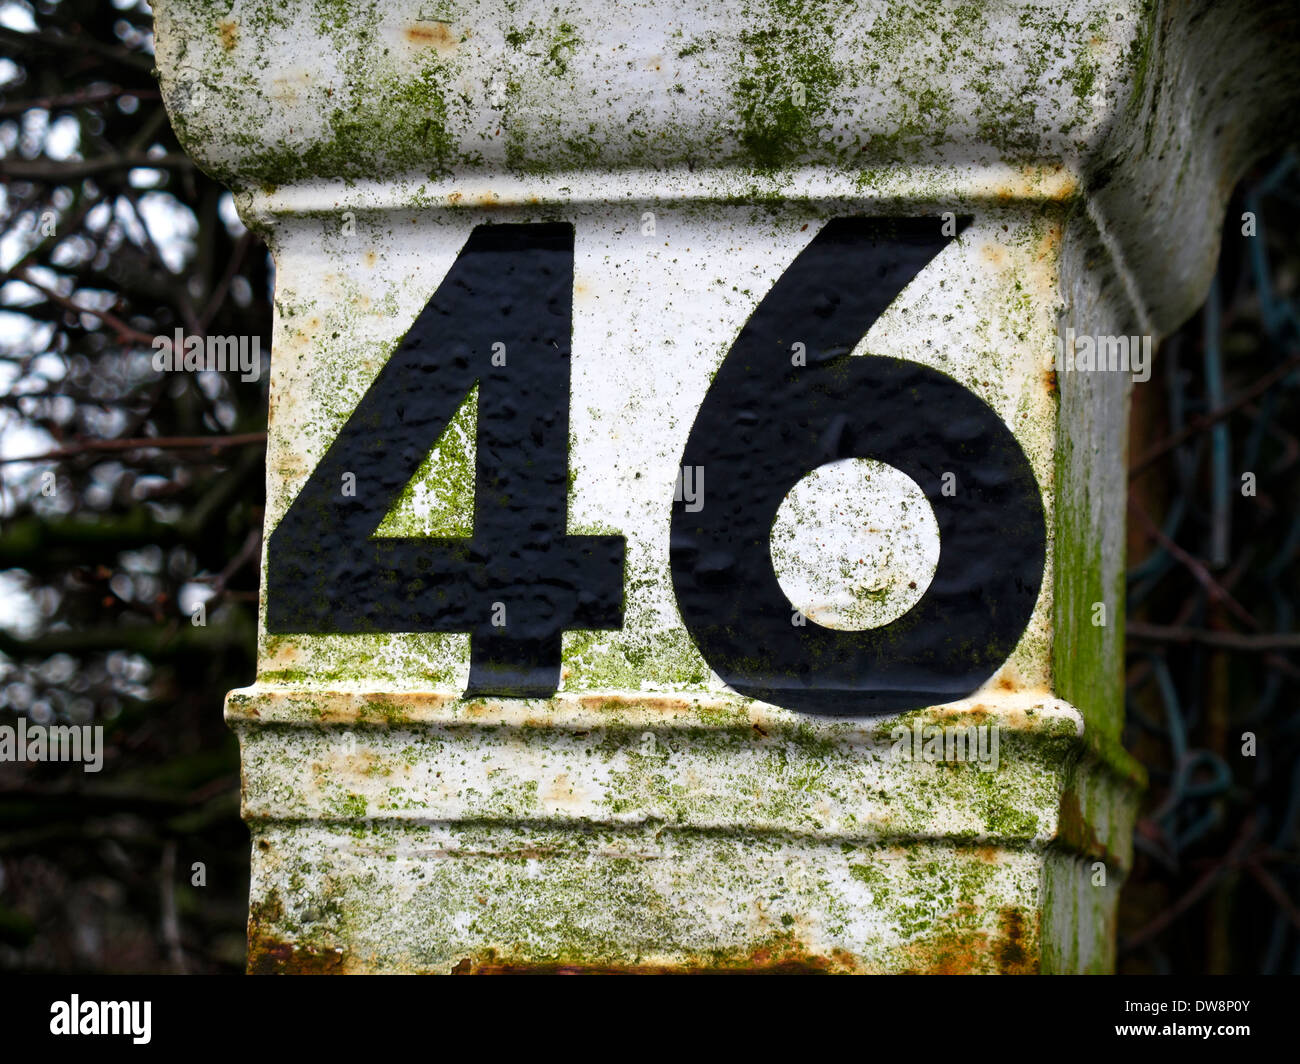 Number 46  on gatepost - Stock Image